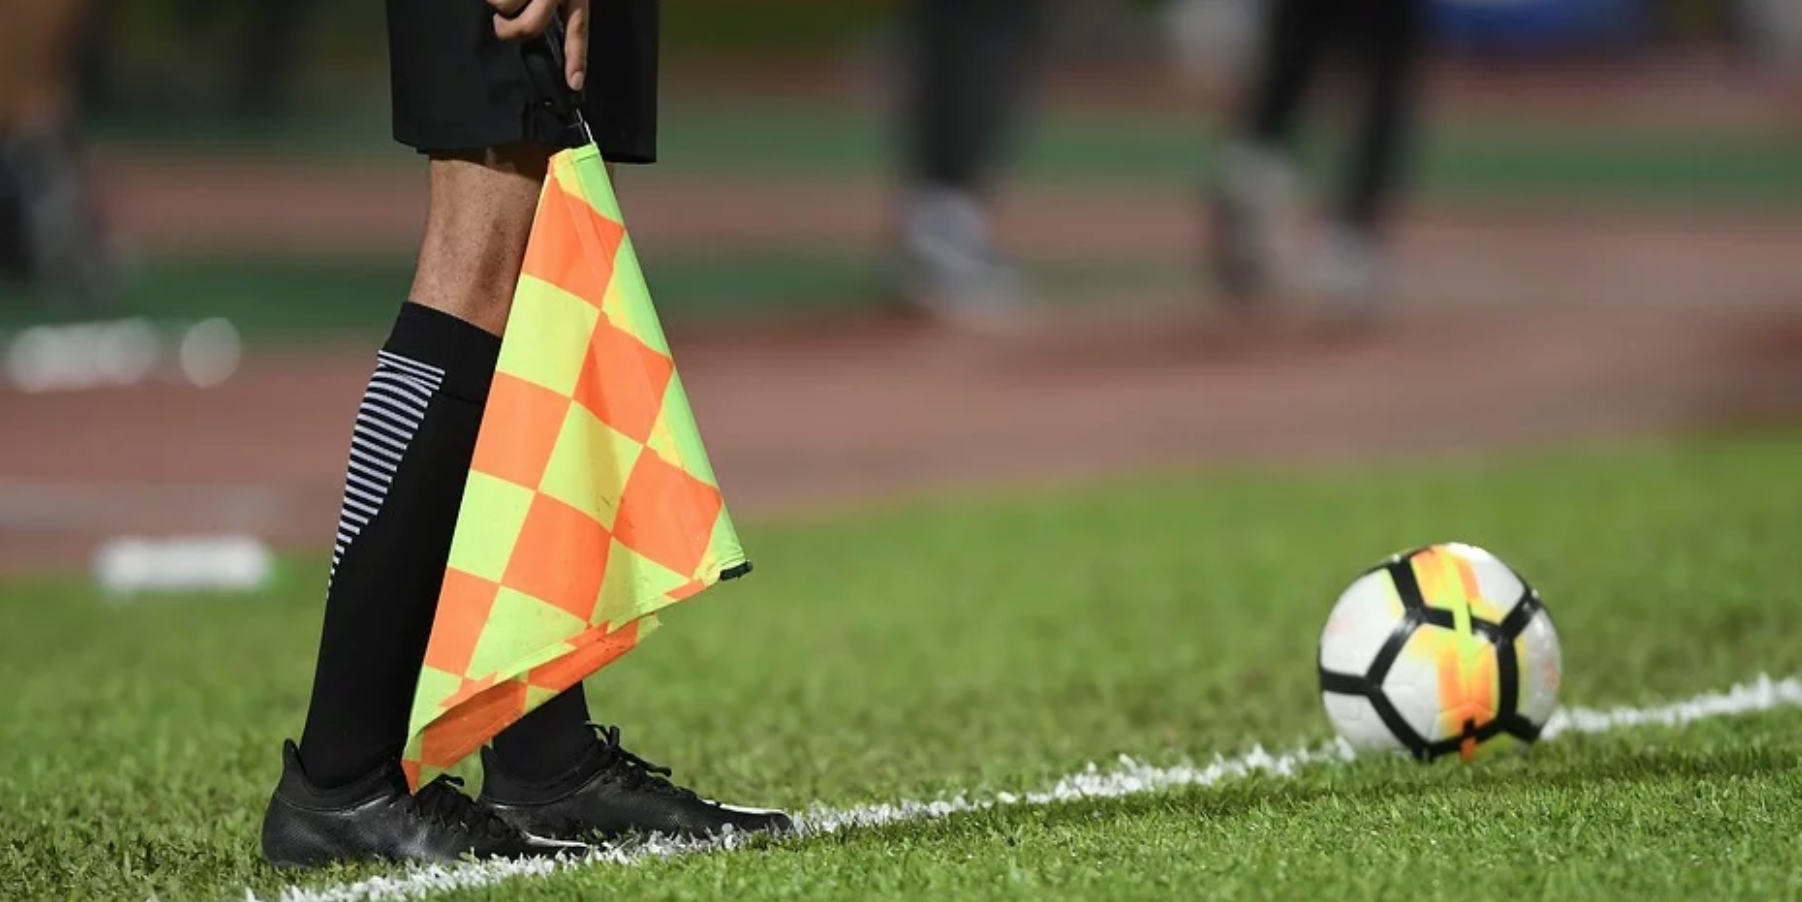 Referee Holding Offside Flag